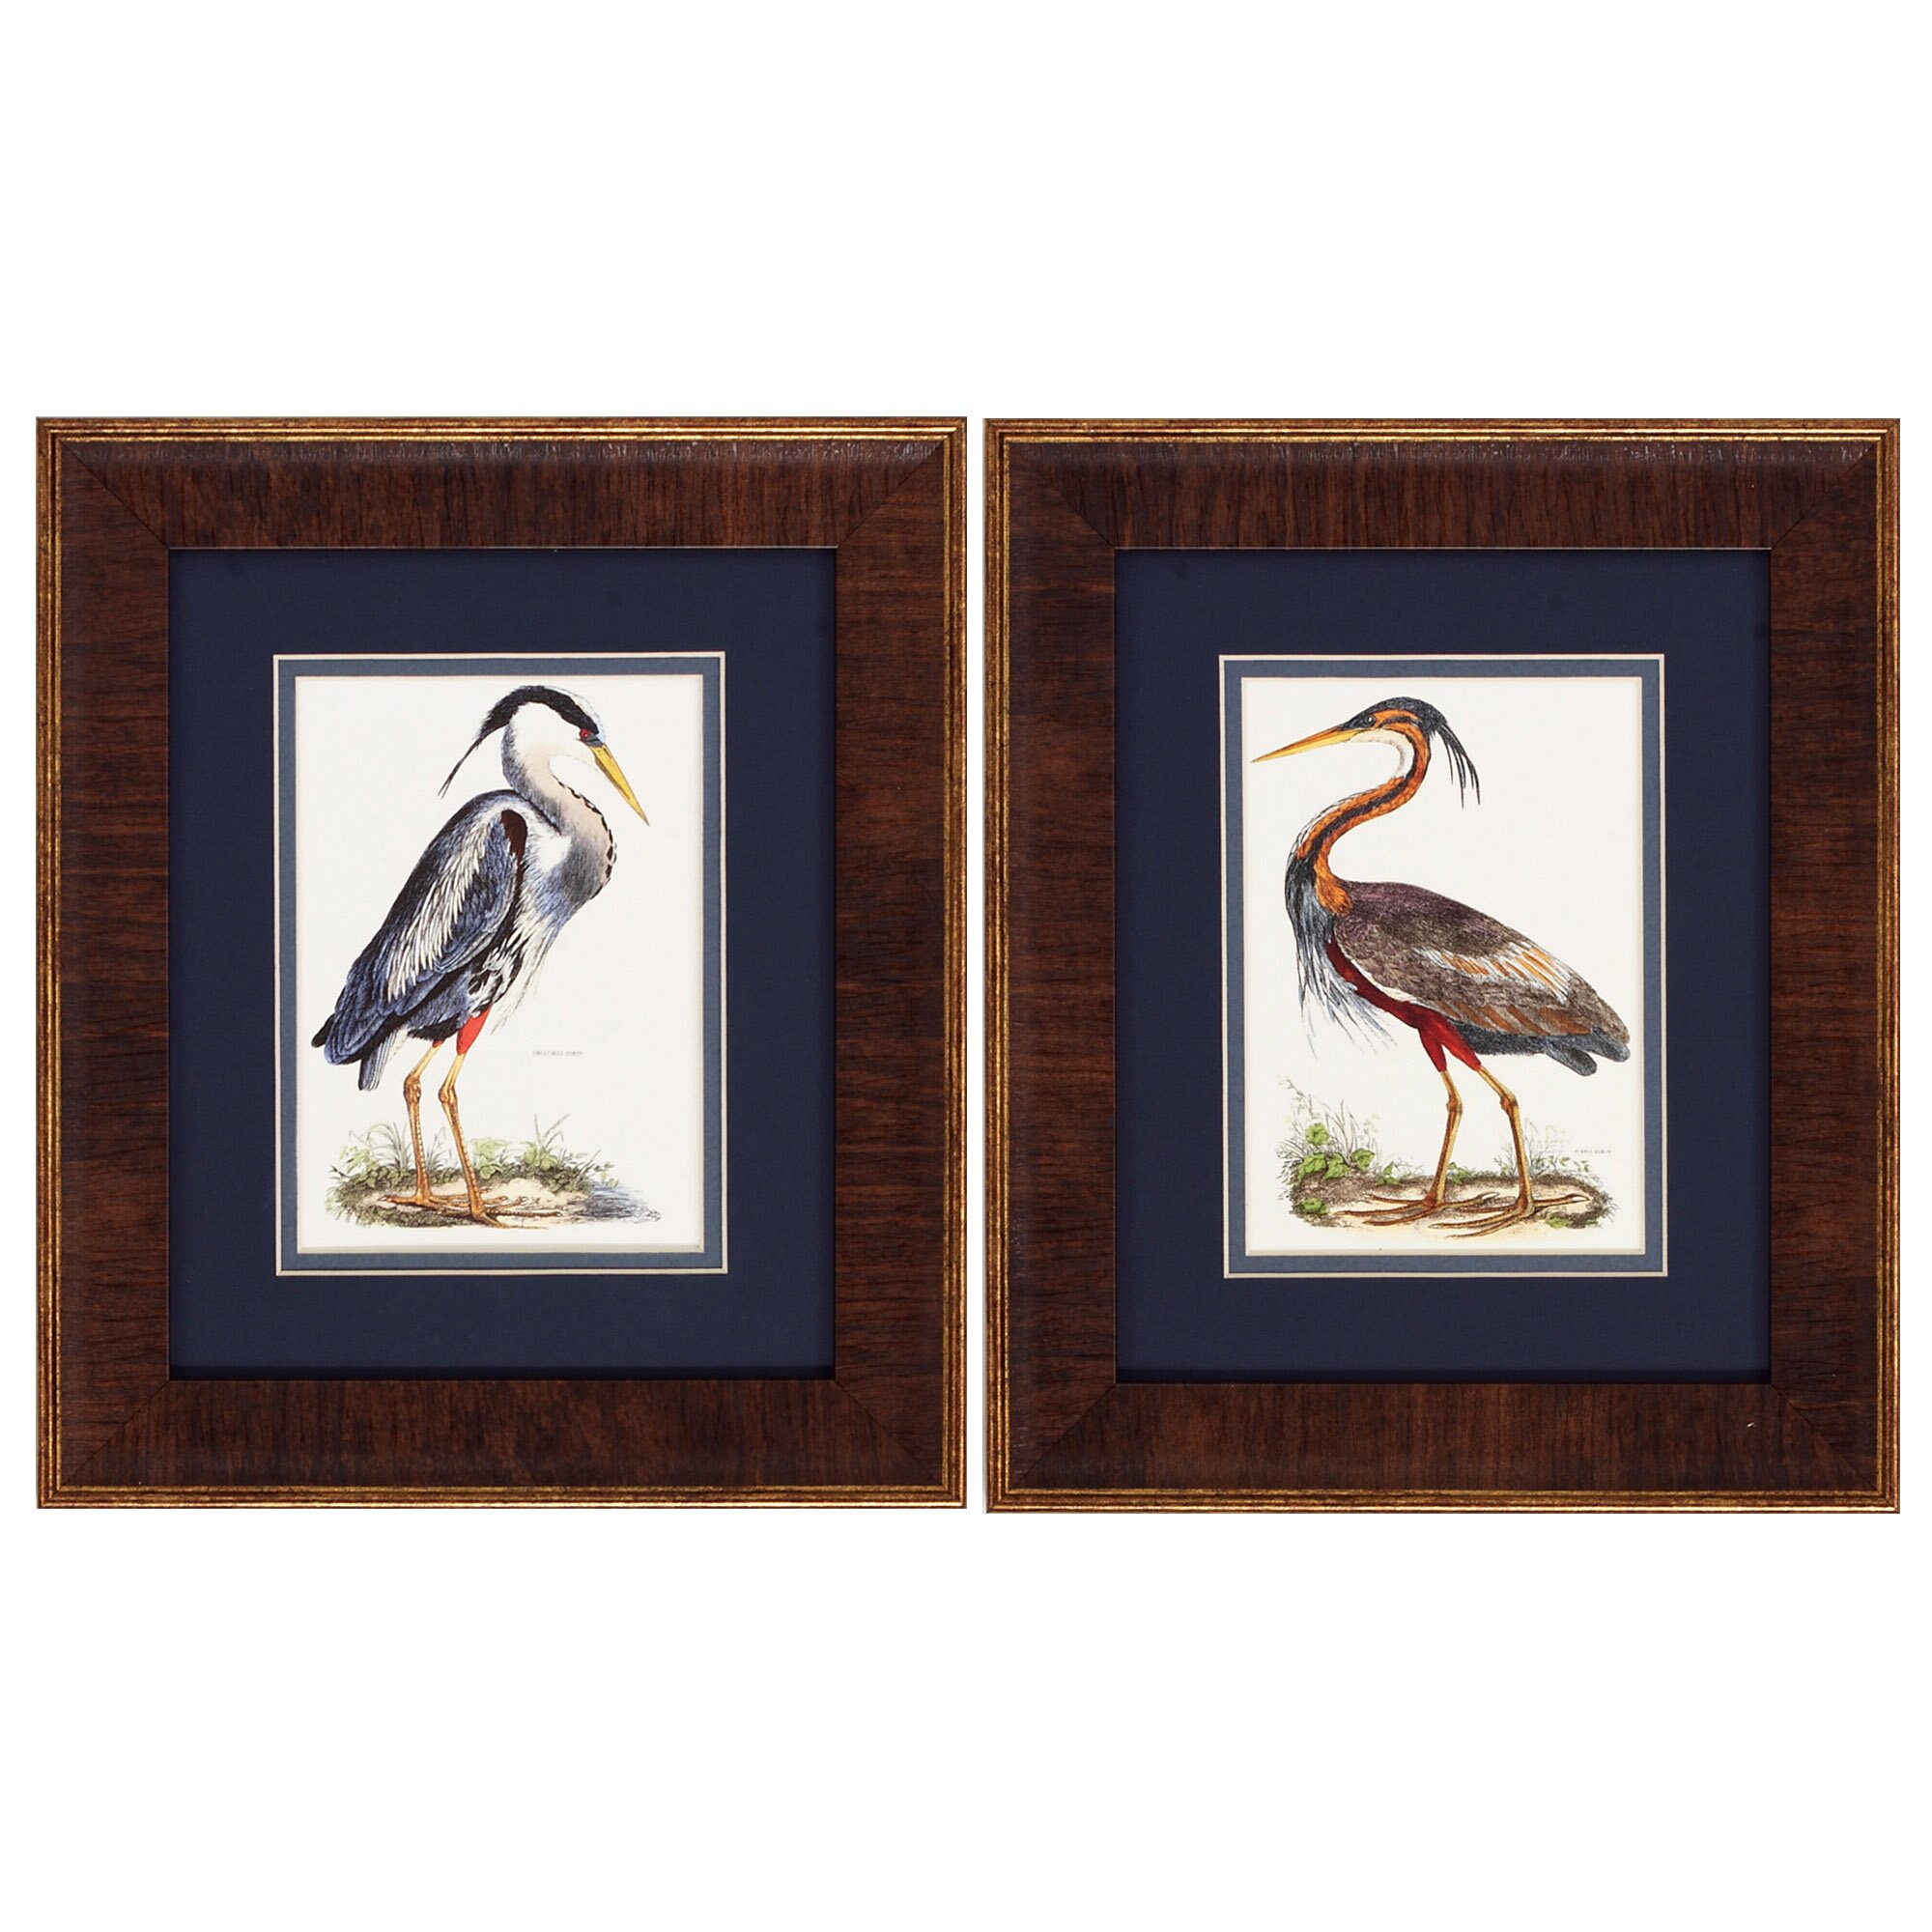 Propac Images Heron 2 Piece Framed Graphic Art Set Reviews Wayfair